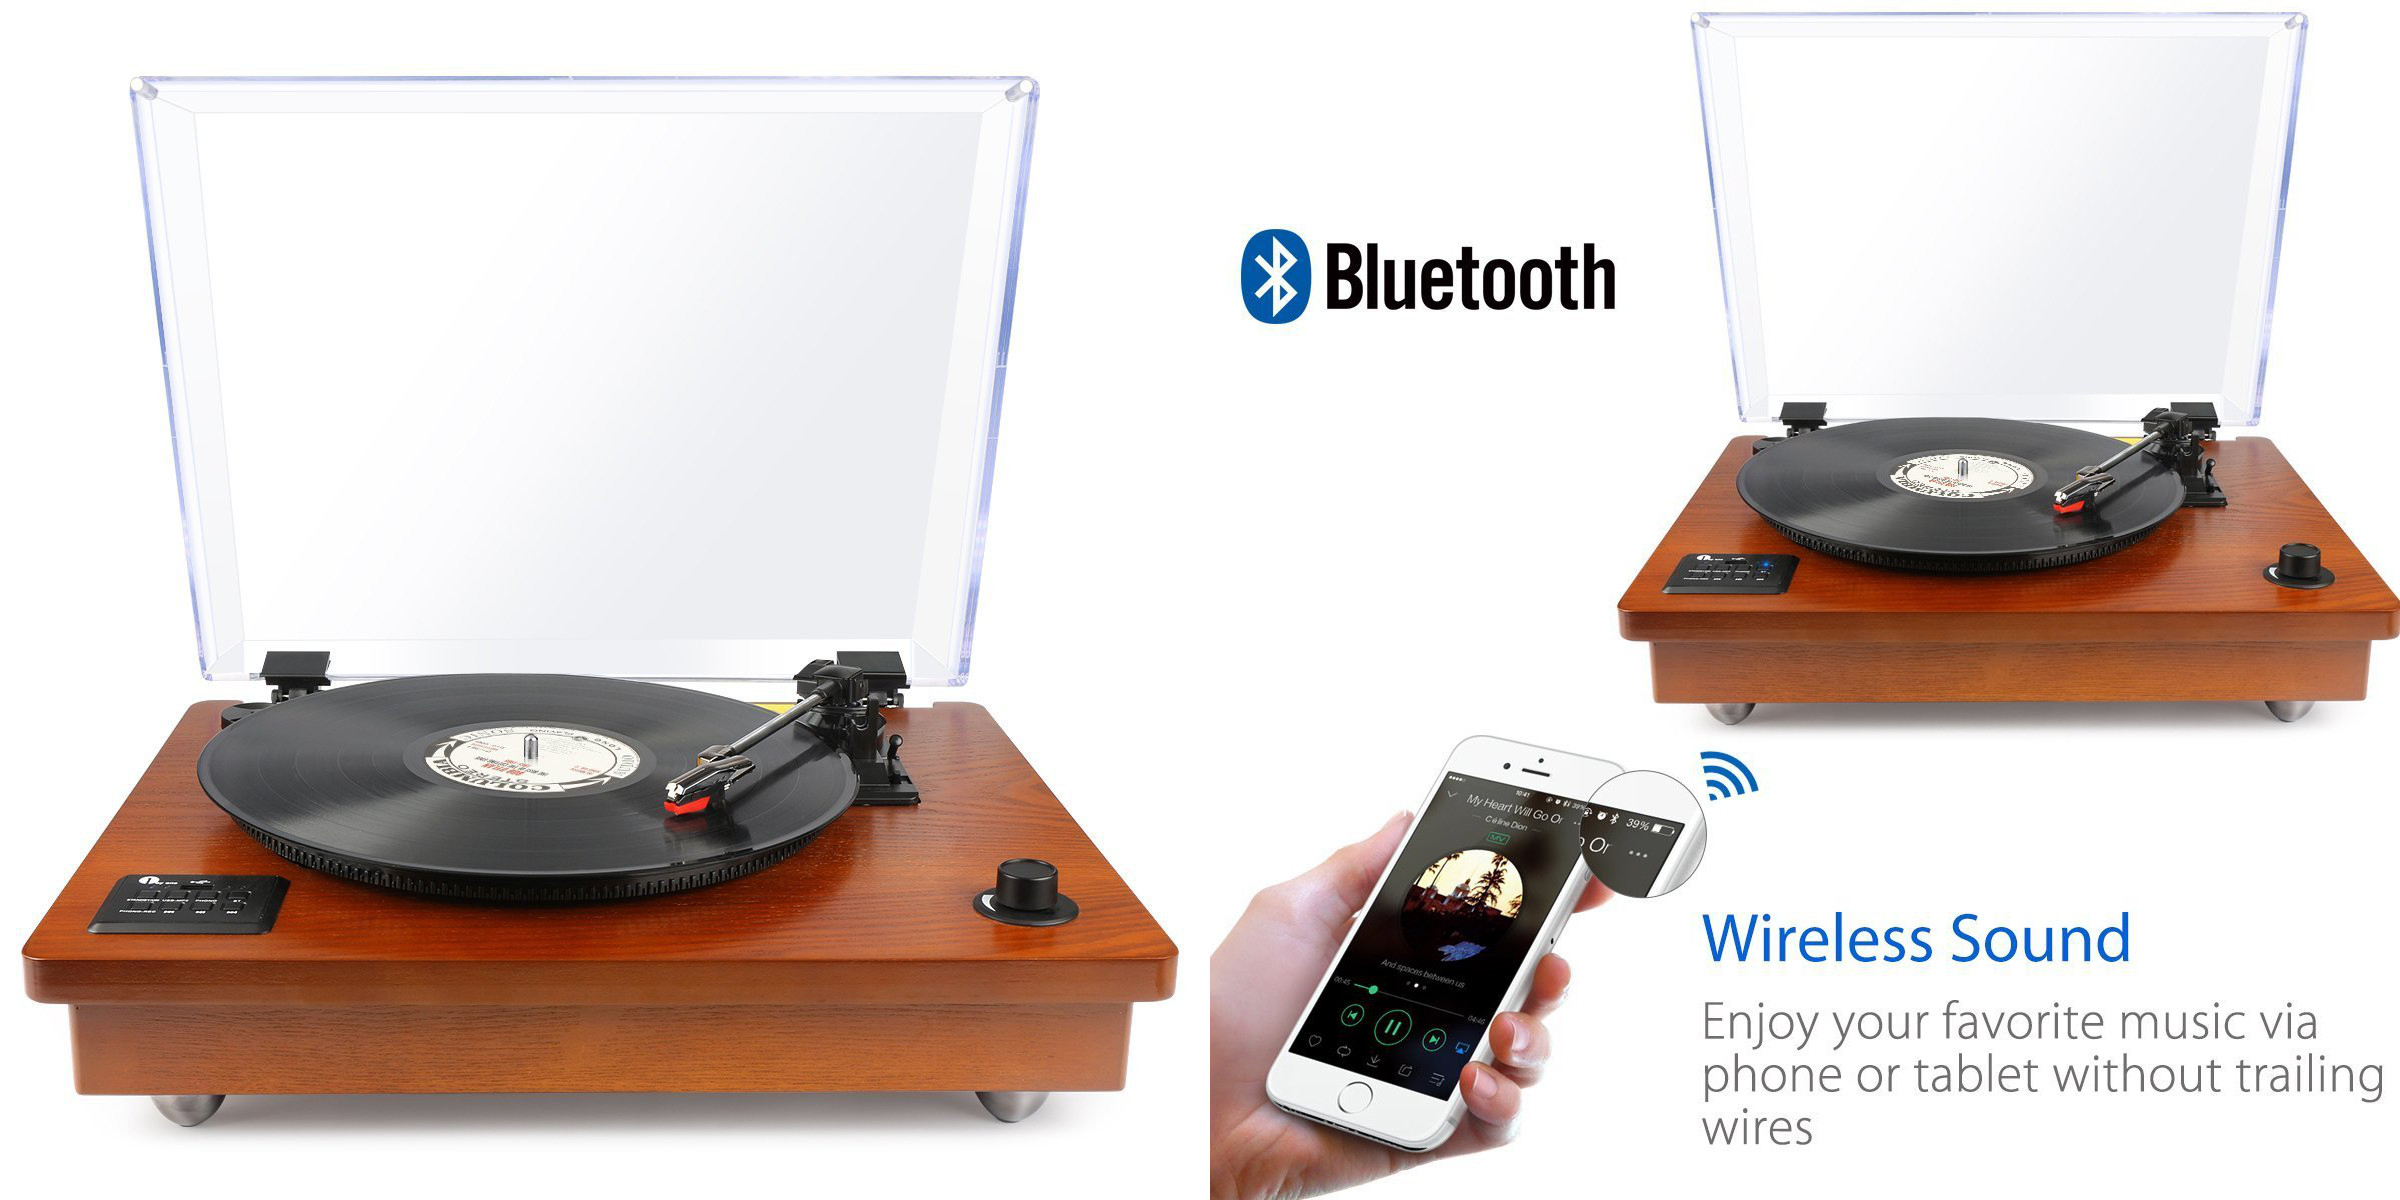 Amazon offers turntables at up to 40% off today: USB from $28 or Bluetooth $91, more